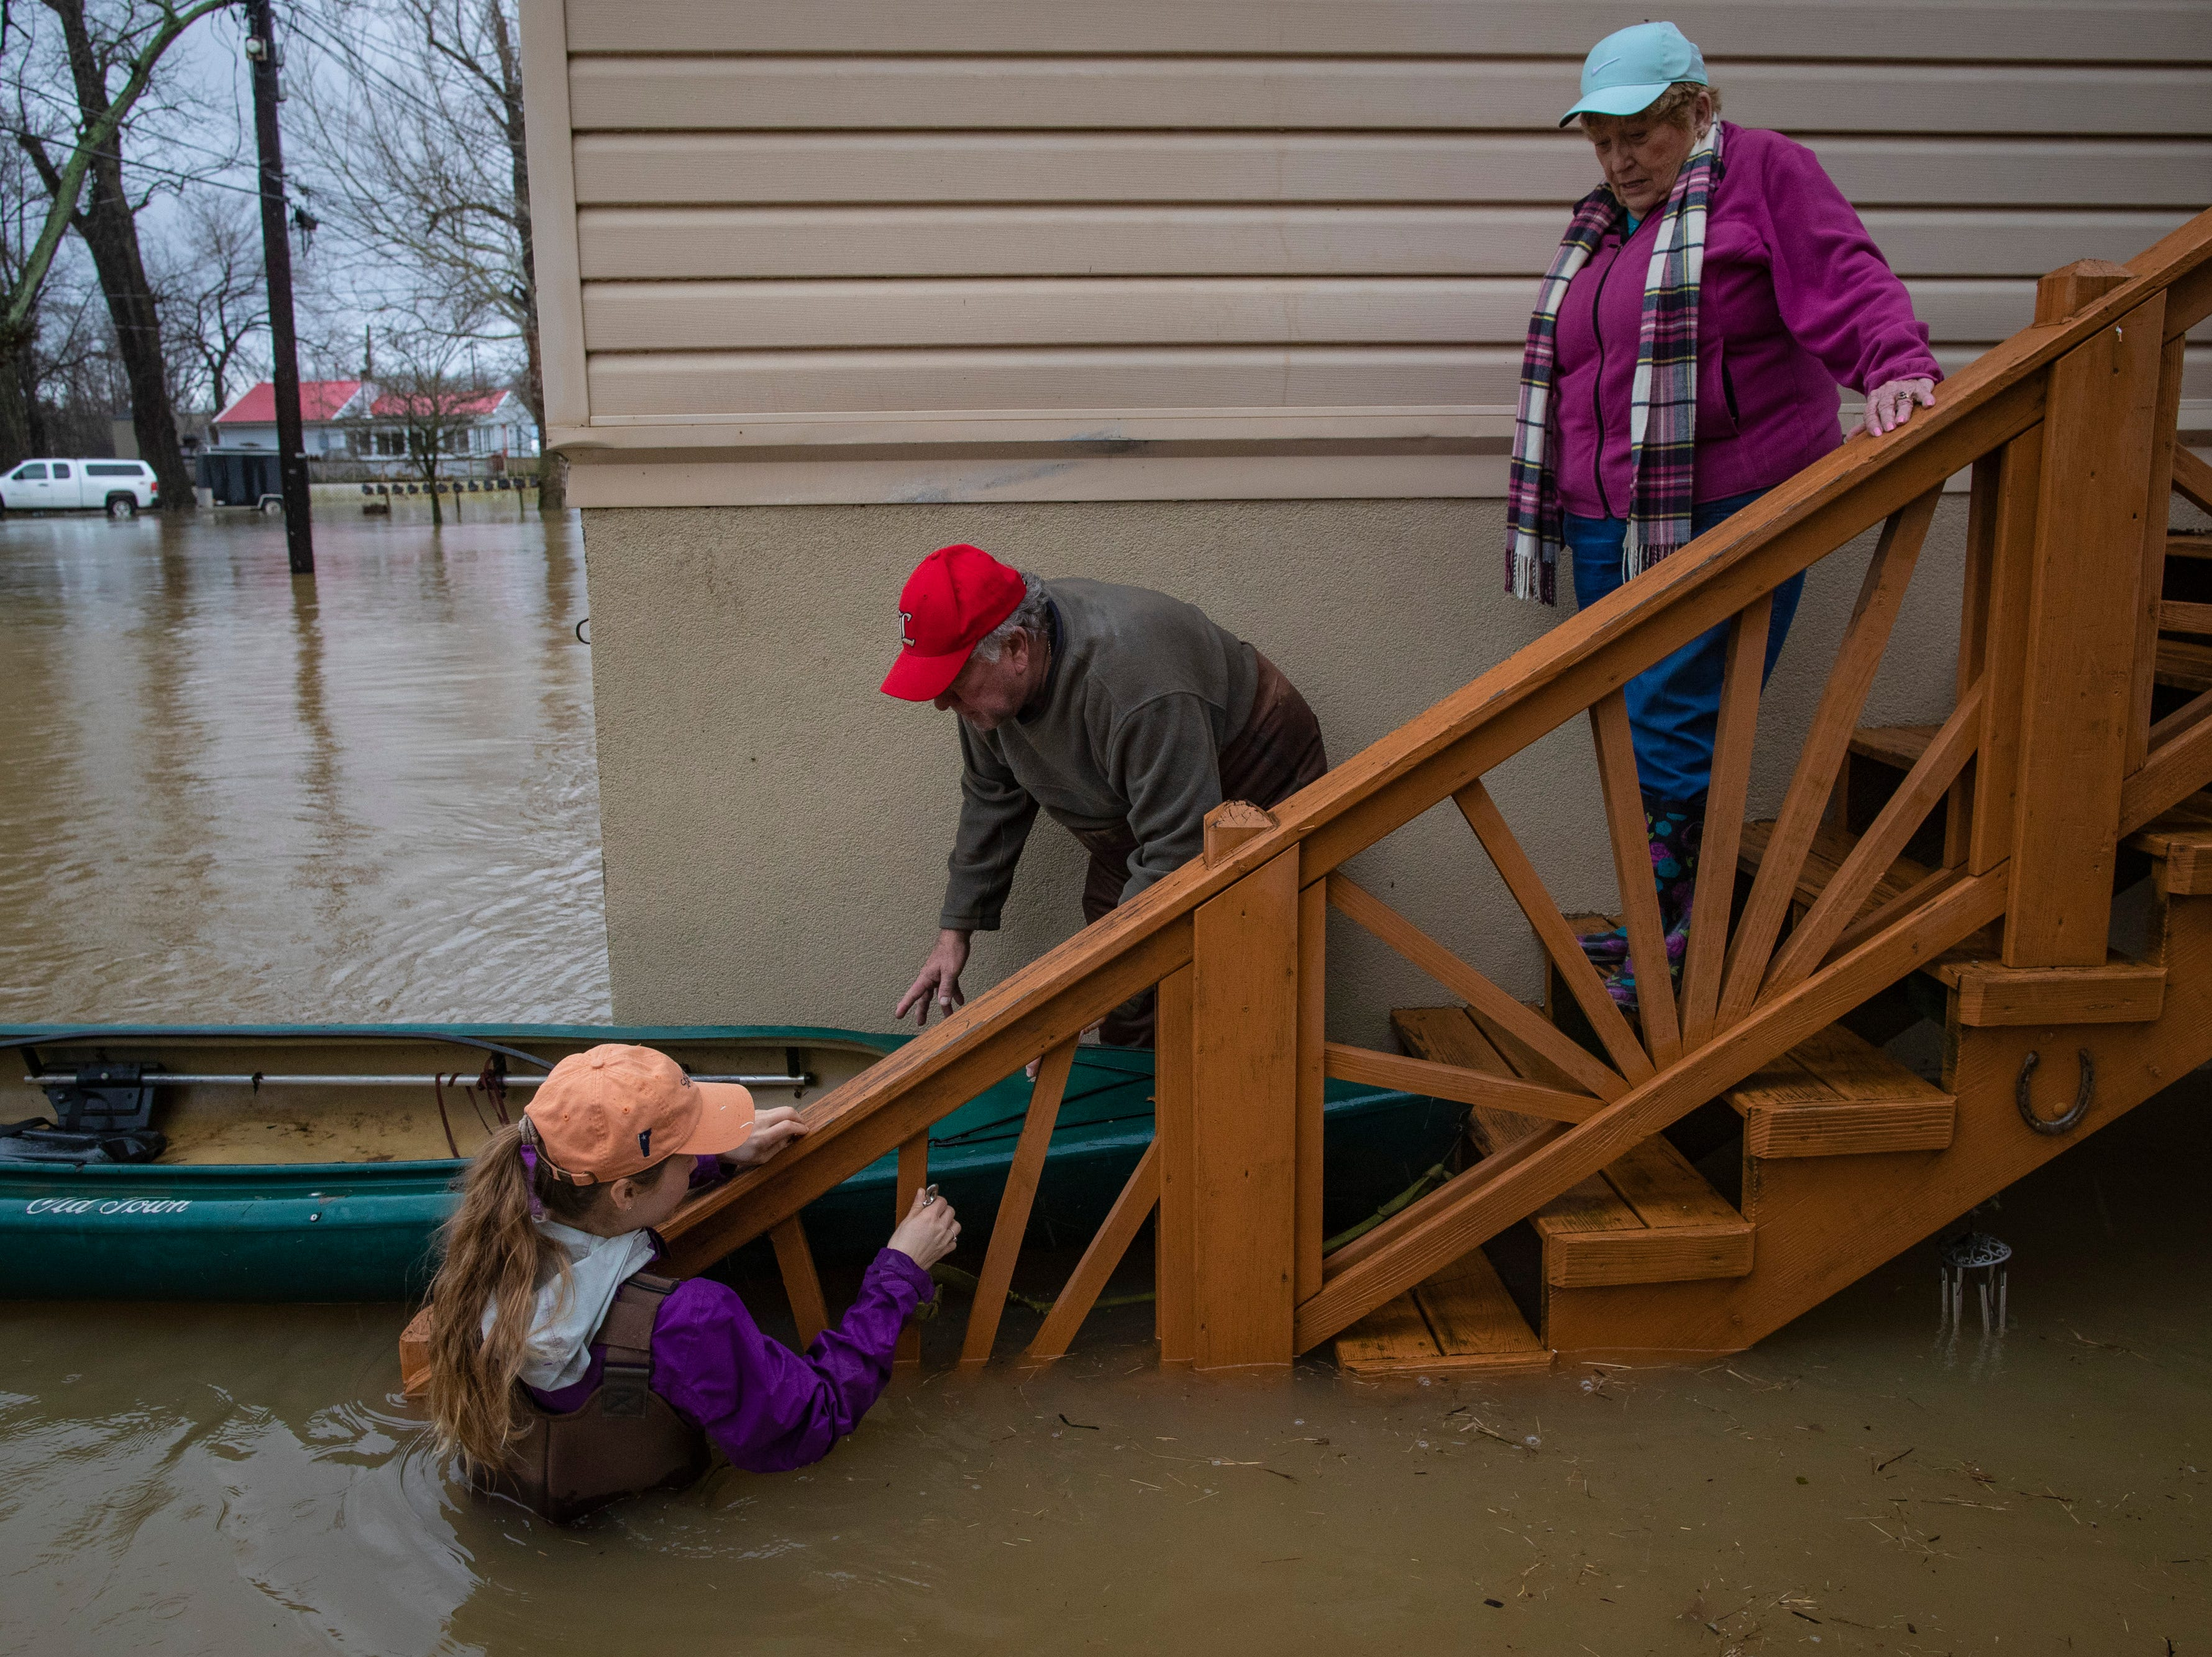 Neighbors help Tony Kerger, 78, center, get his wife Judy Kerger, 77, into a kayak to get her to the couple's vehicle as high waters on the Ohio River rose Tuesday. Feb. 12, 2019